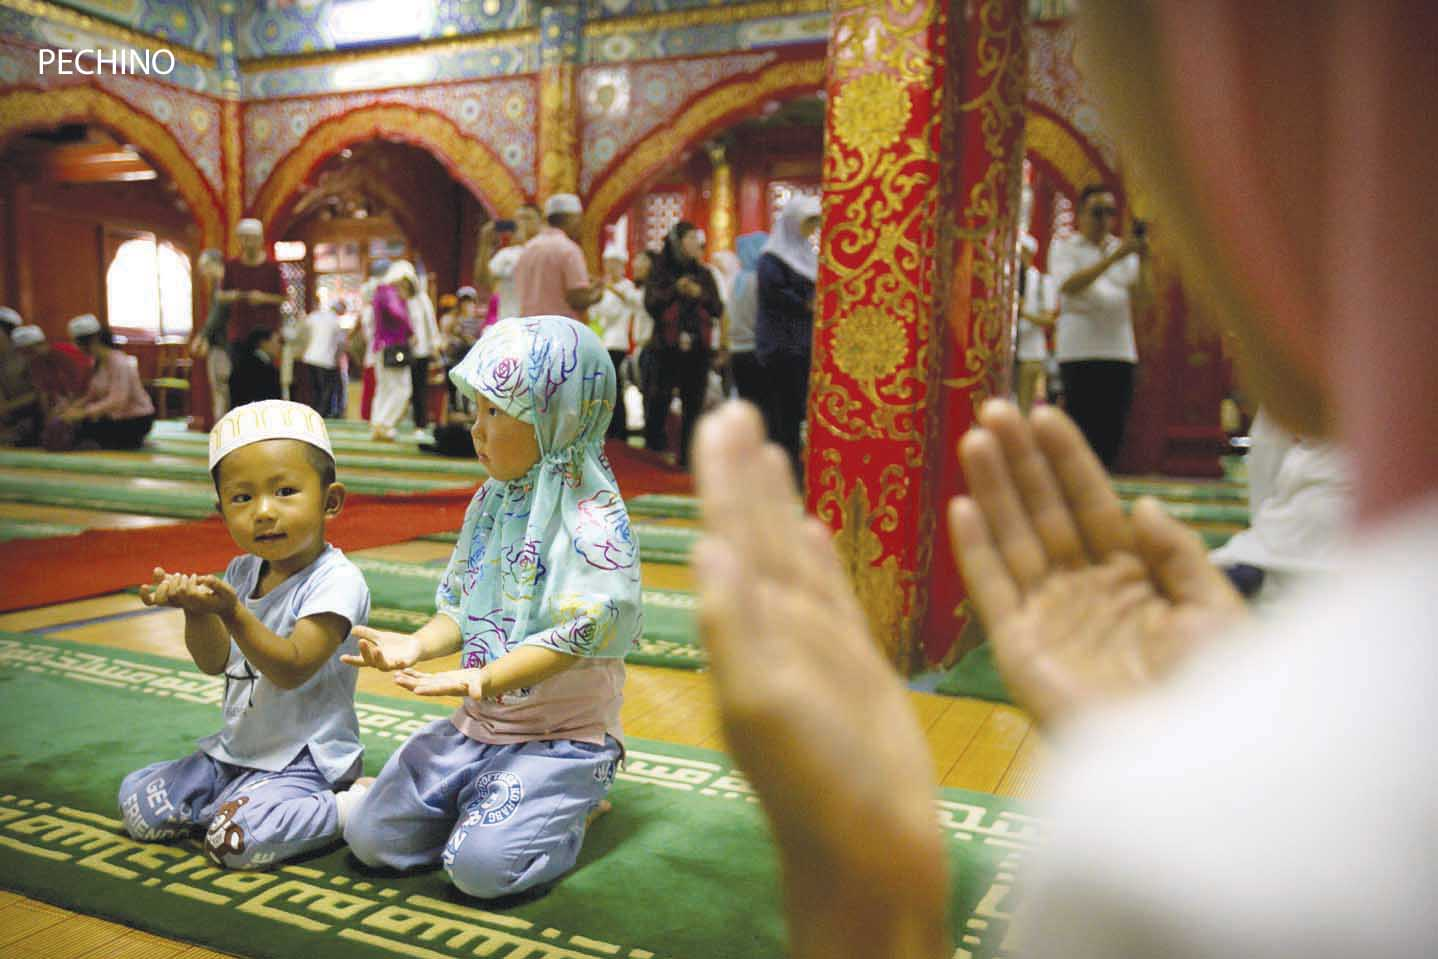 Beijing : Children kneel inside the historic Niujie Mosque after Eid al-Fitr prayer services in Beijing, Monday, June 26, 2017. Although much of the Muslim world celebrated Eid al-Fitr, which marks the end of the holy fasting month of Ramadan, on Sunday, Muslims in China observed the holiday on Monday. AP/PTI(AP6_26_2017_000068B)